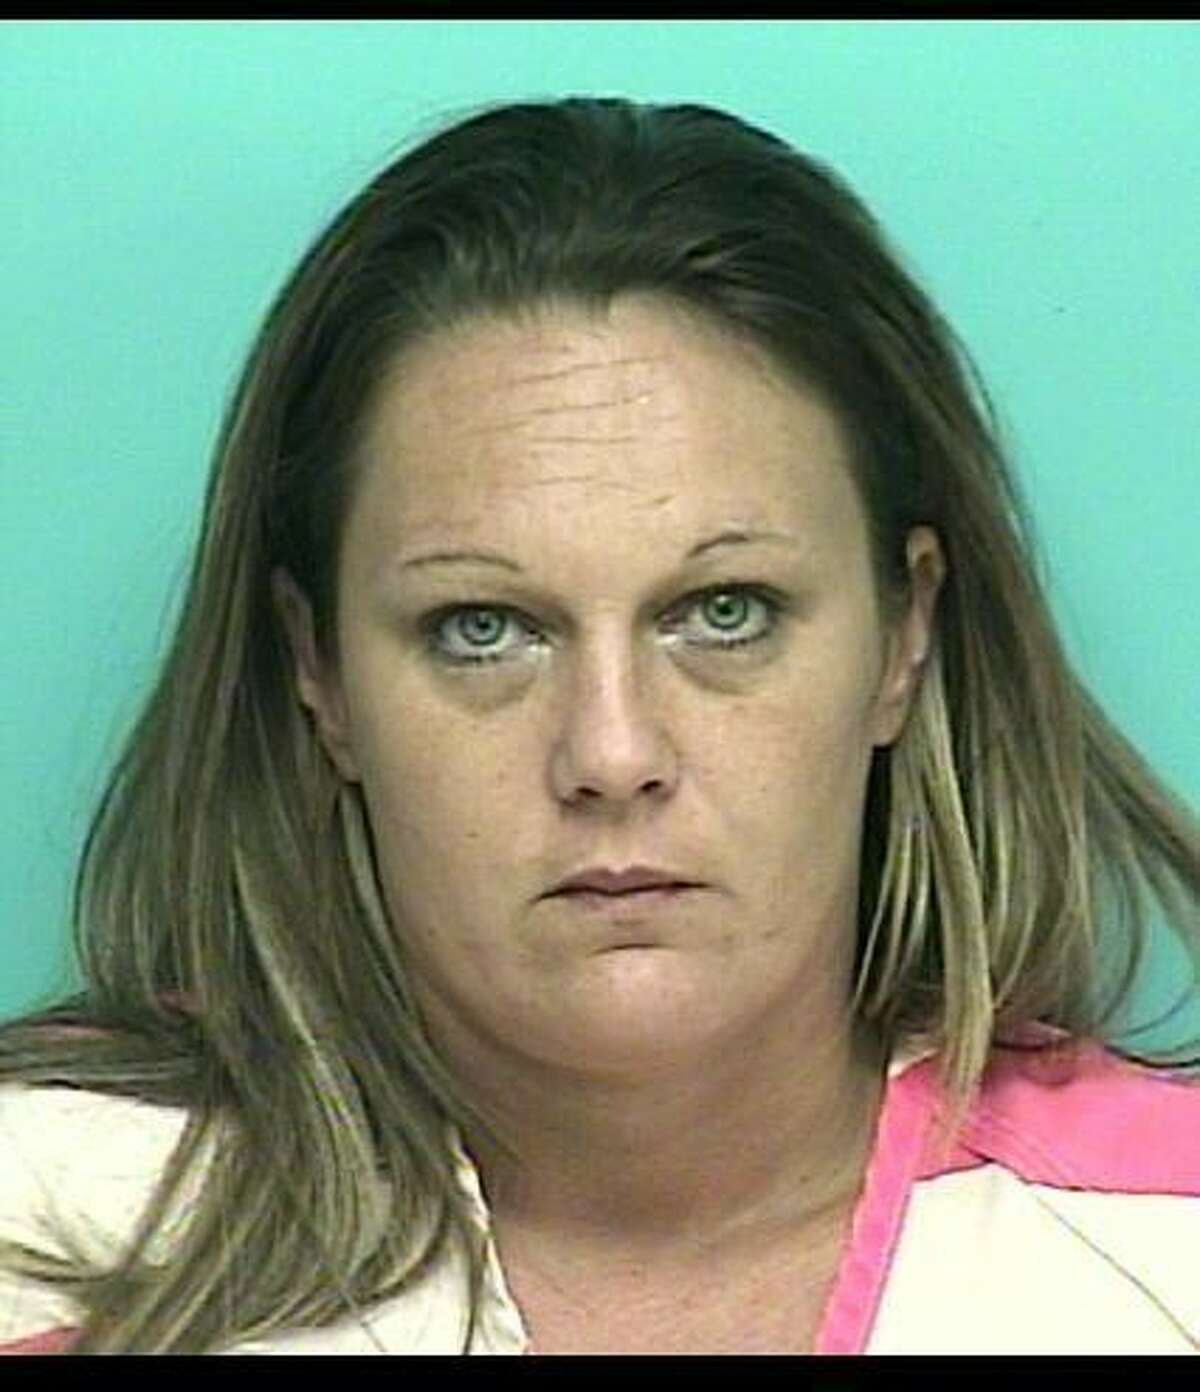 HANS, Brandy MichelleWhite/Female DOB: 04/19/1977Height: 5'04'' Weight: 200 lbs.Hair: Brown Eyes: GreenWarrant: # 120201902 Order of ArrestPoss. w/intent to Deliver/Manuf. CSLKA: Lions Gate Dr., Humble.